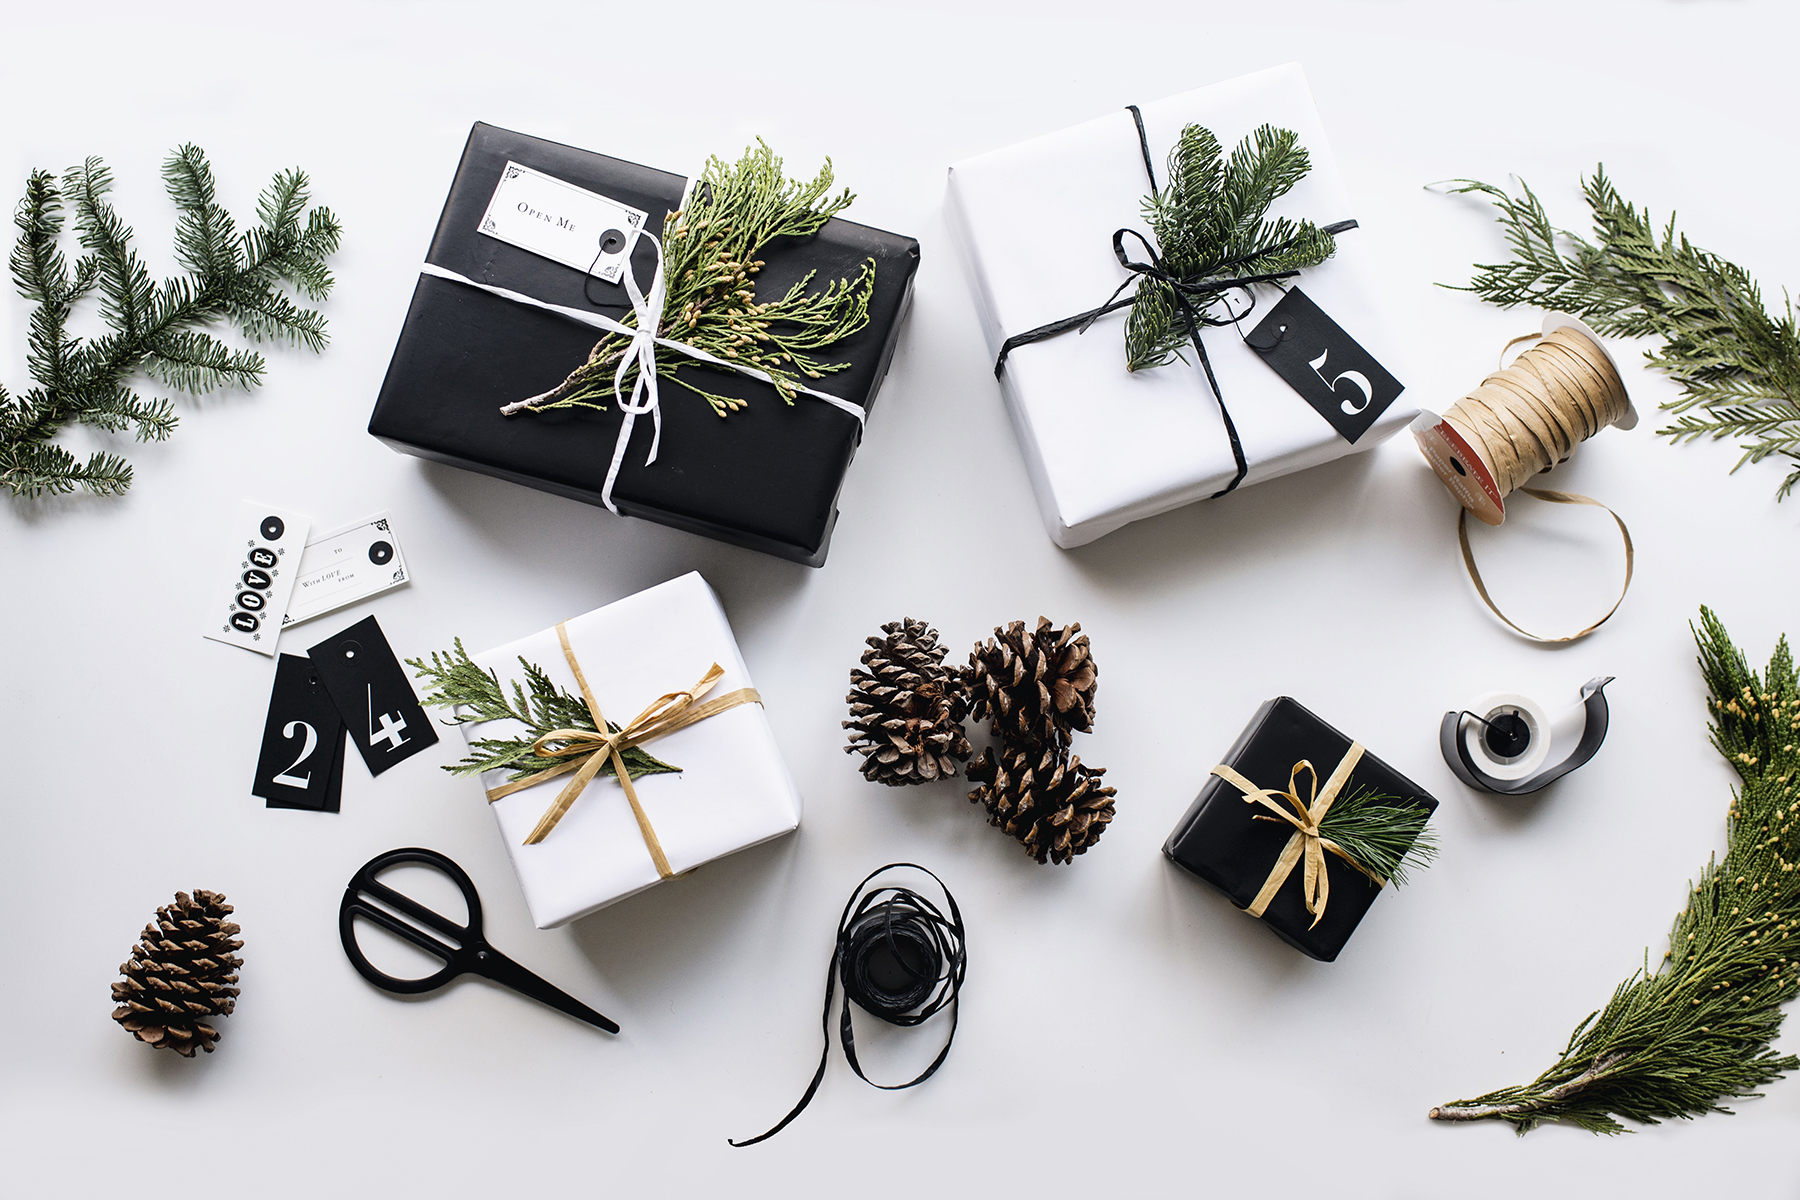 Innovative Christmas Gift Ideas: 10 Best Gifts For New Moms + DIY Gift Wrap Tutorial